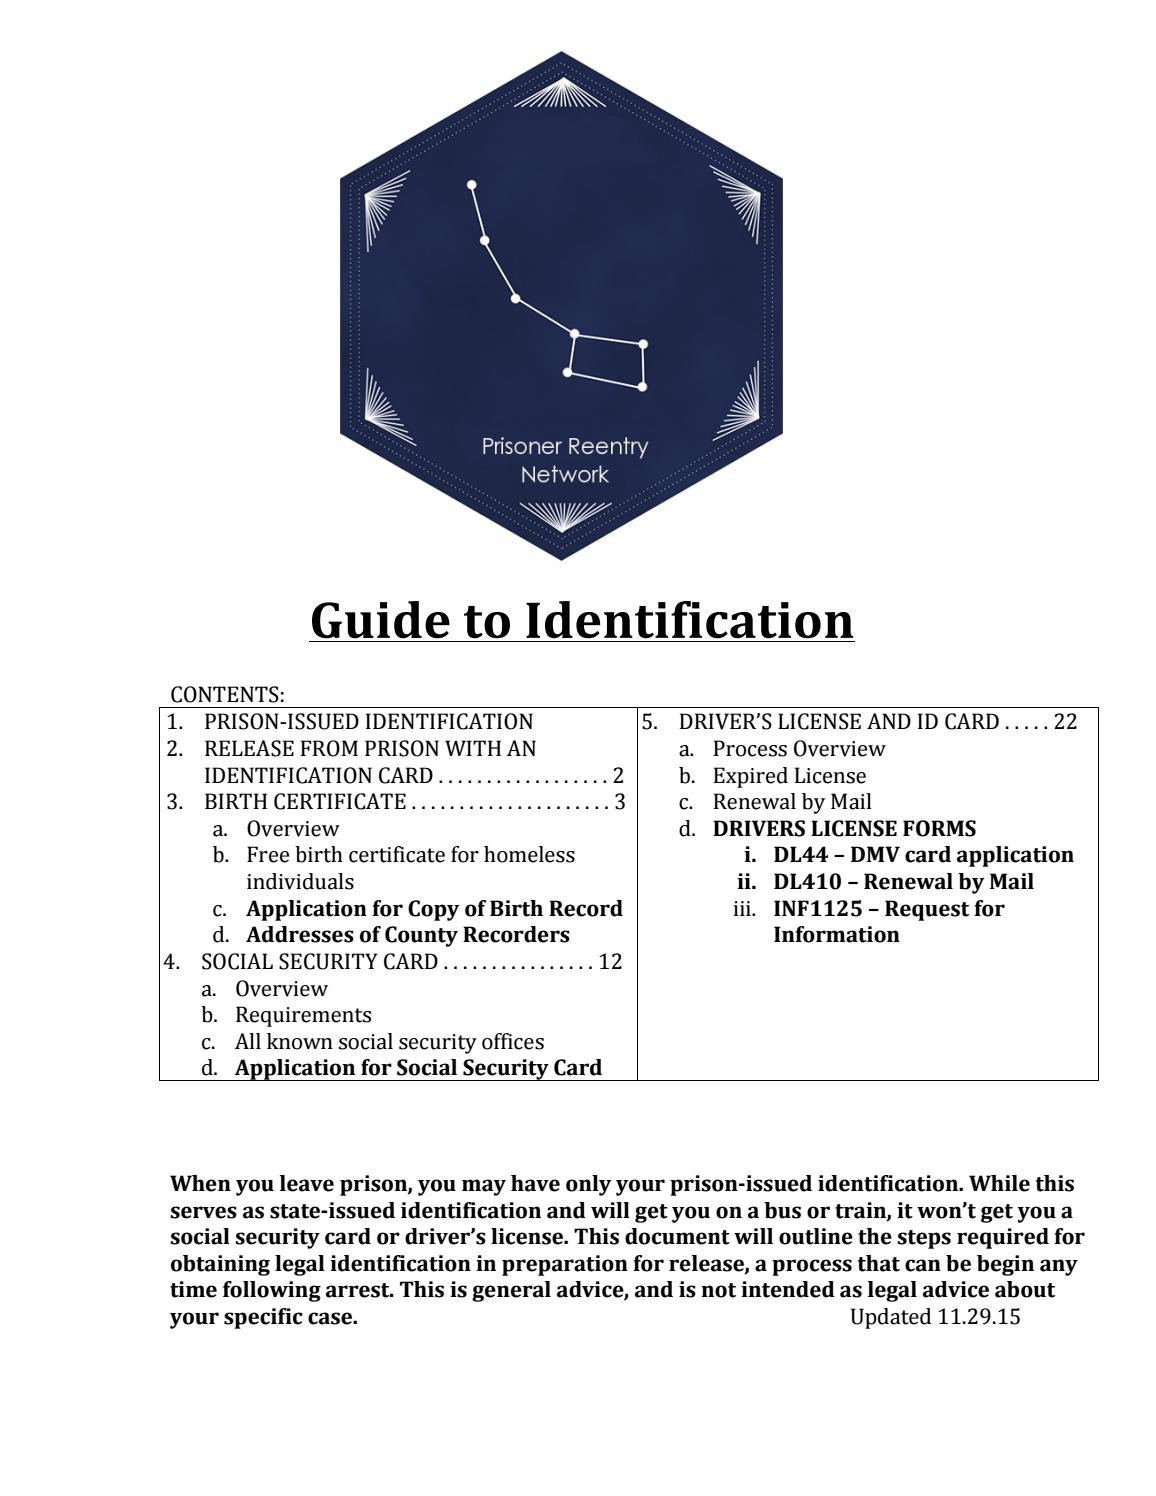 Prisoner reentry network identification by prisonerreentrynetwork prisoner reentry network identification by prisonerreentrynetwork issuu aiddatafo Images